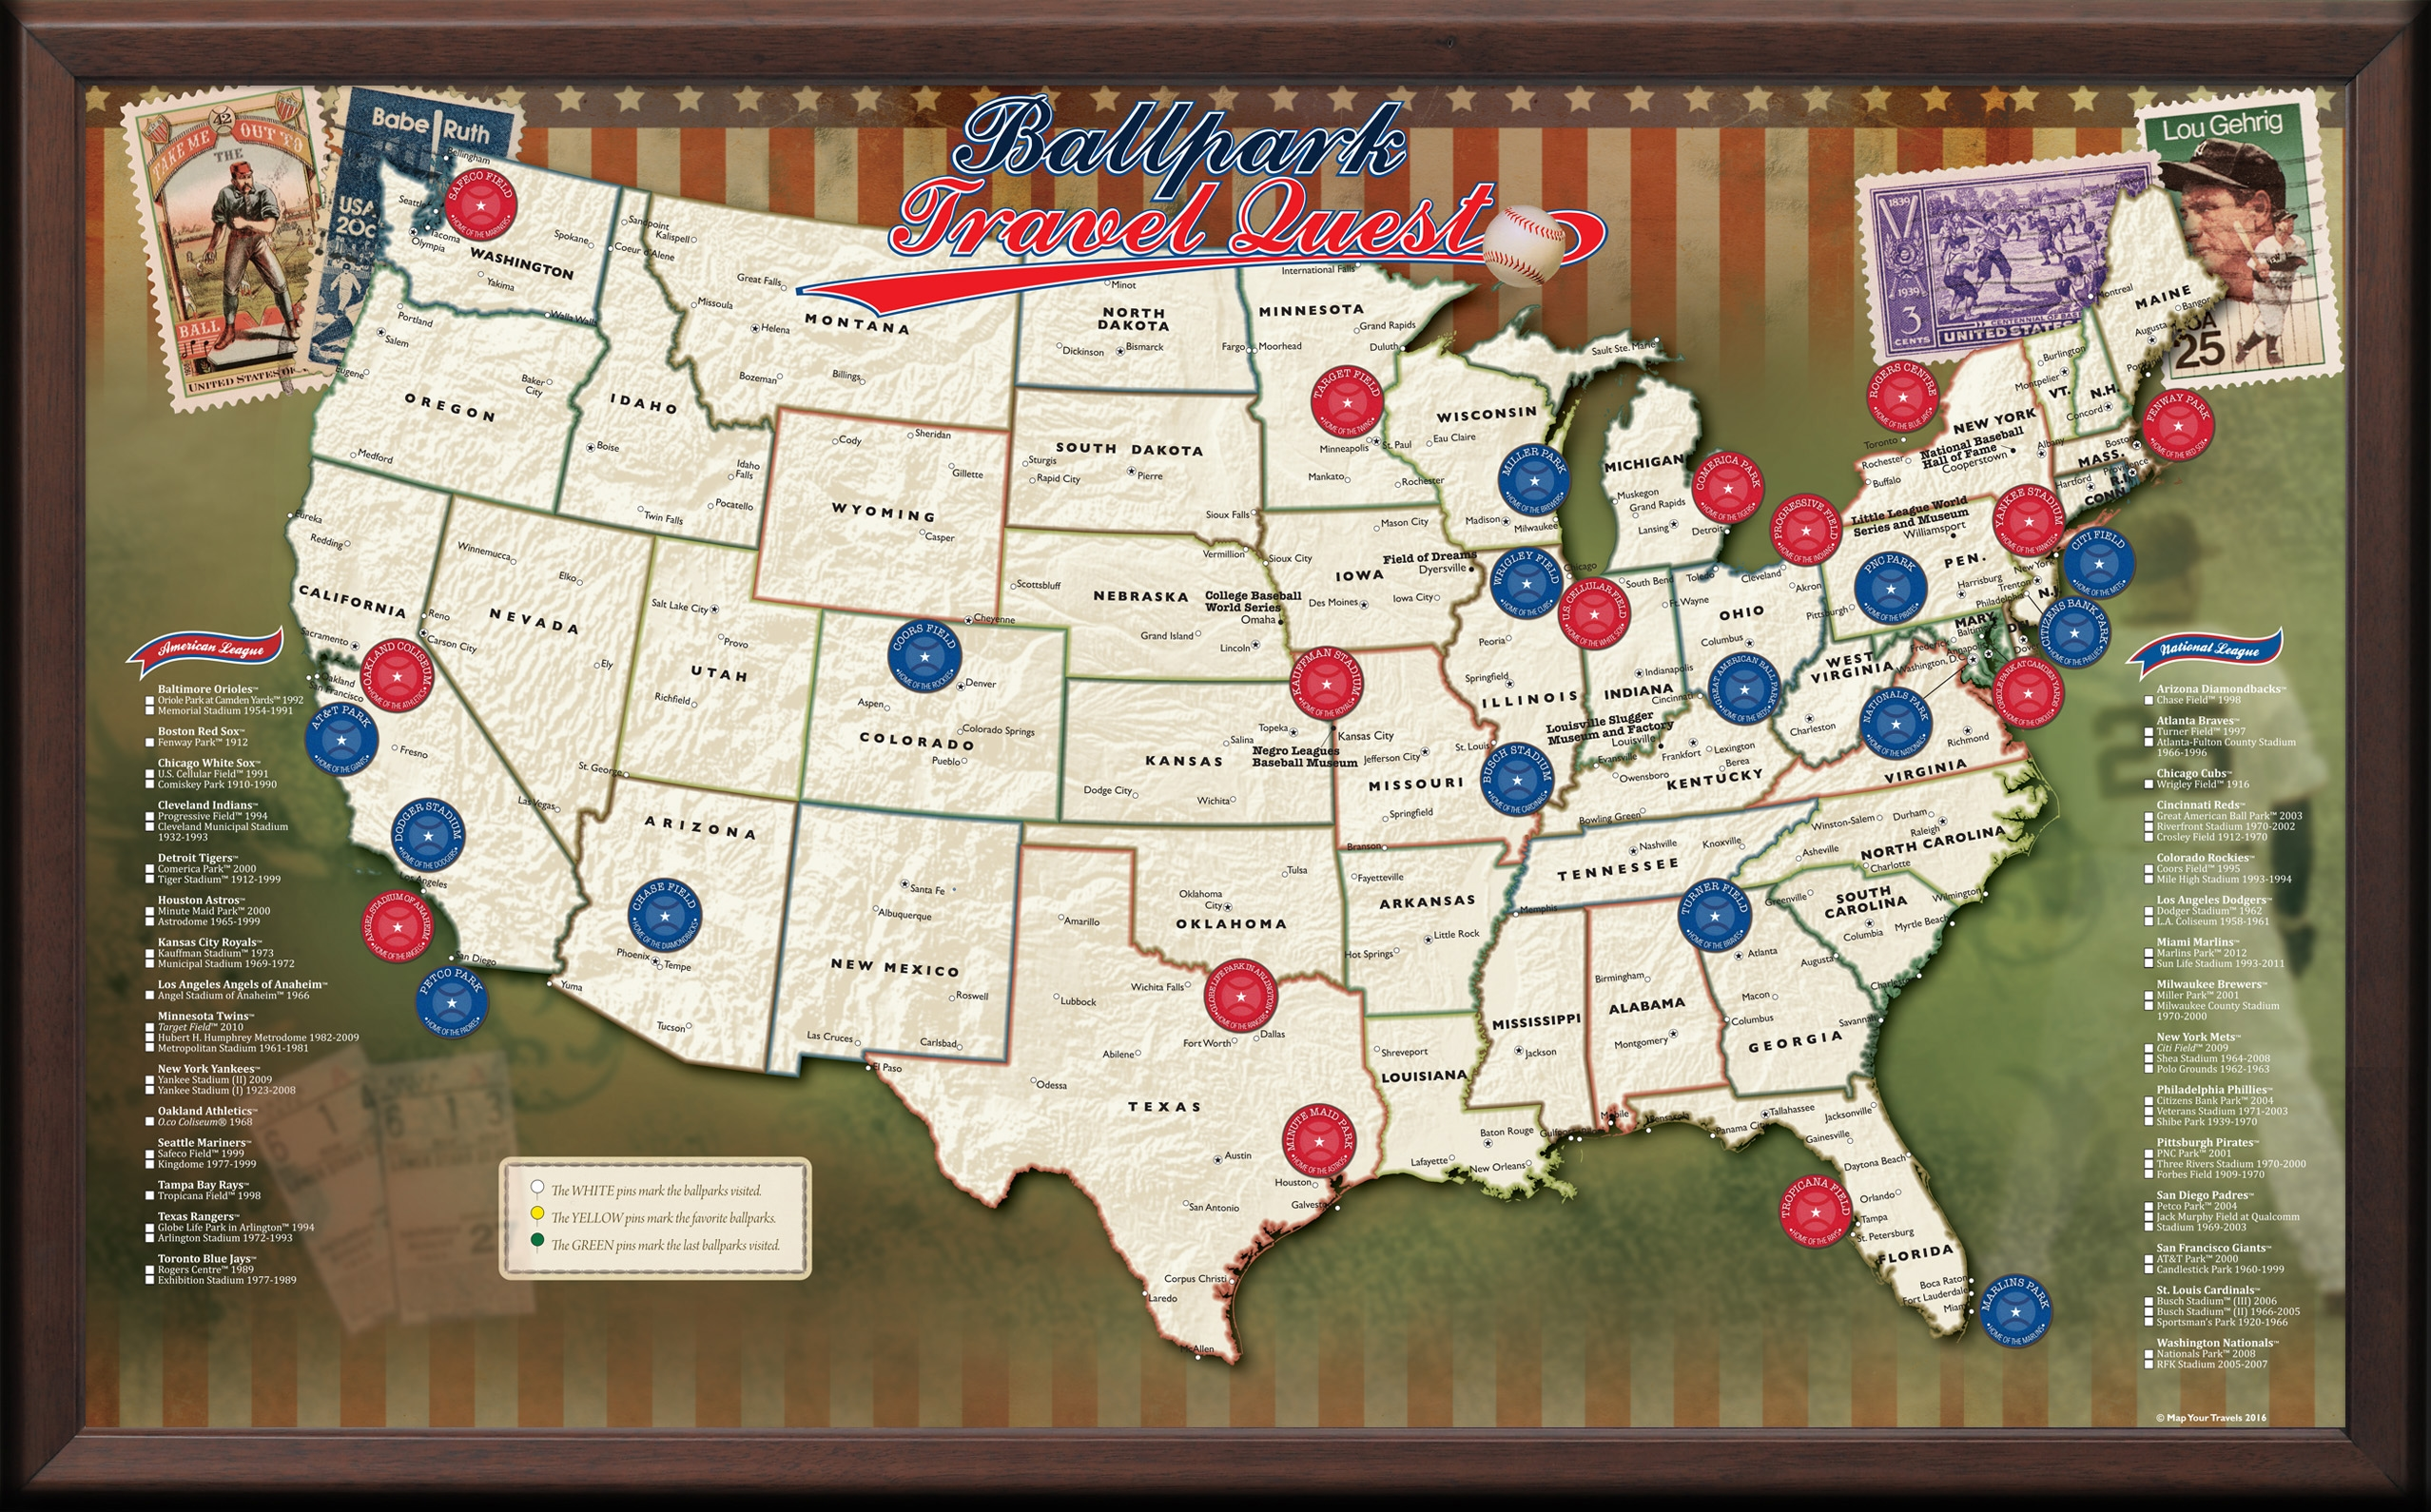 USA Baseball Push Pin Map - Framed and Personalized (Optional)